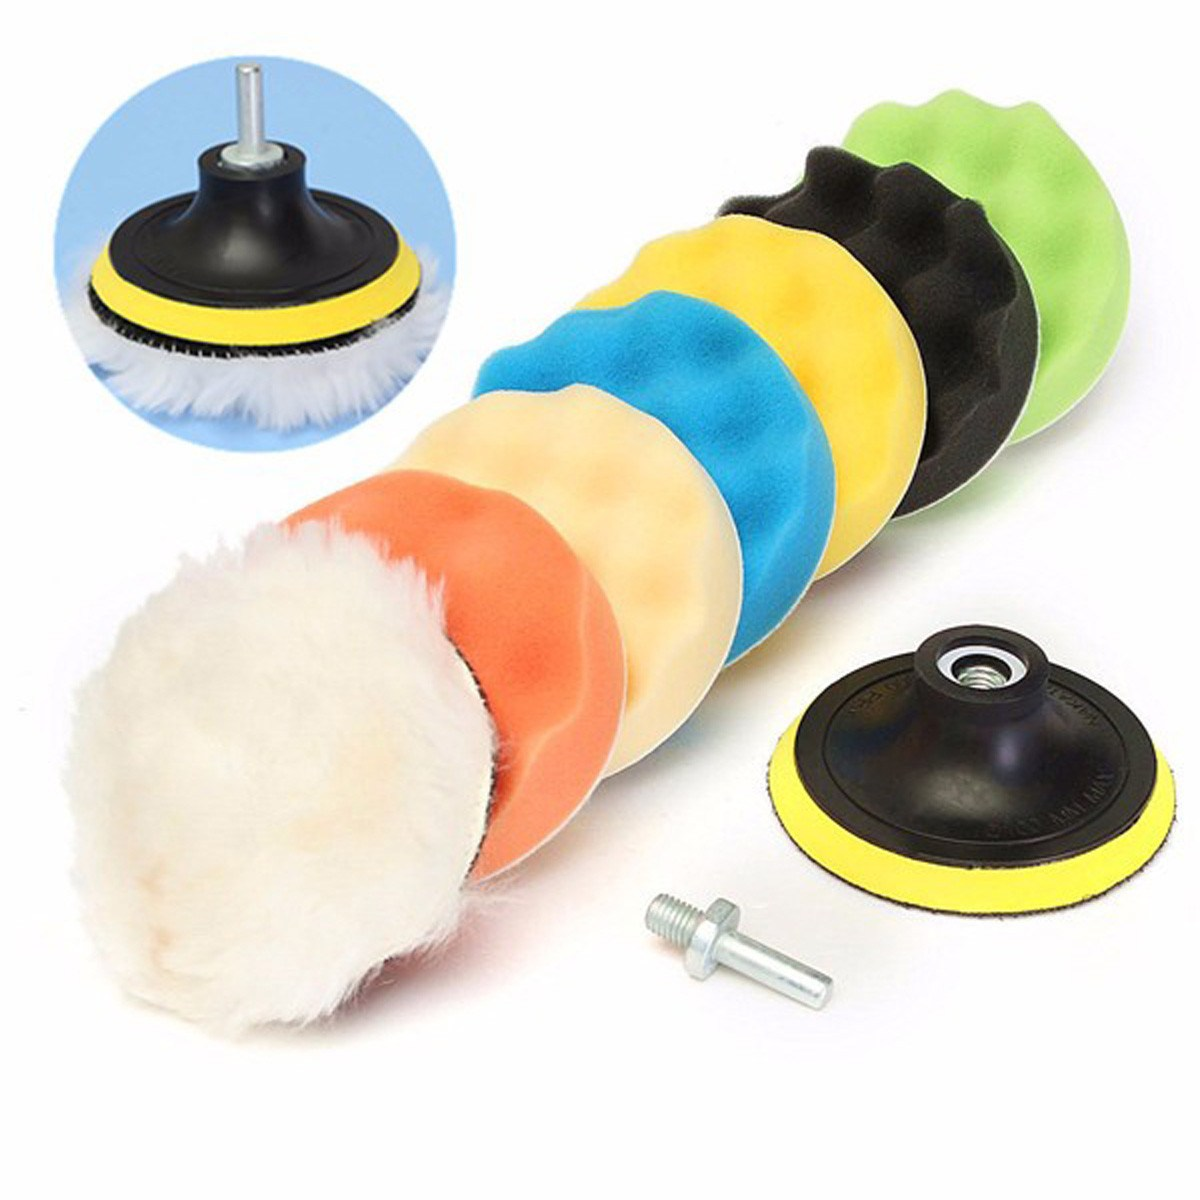 8pcs 5 Inch Woolen Buffing Pad Auto Car Polishing Pad Kit